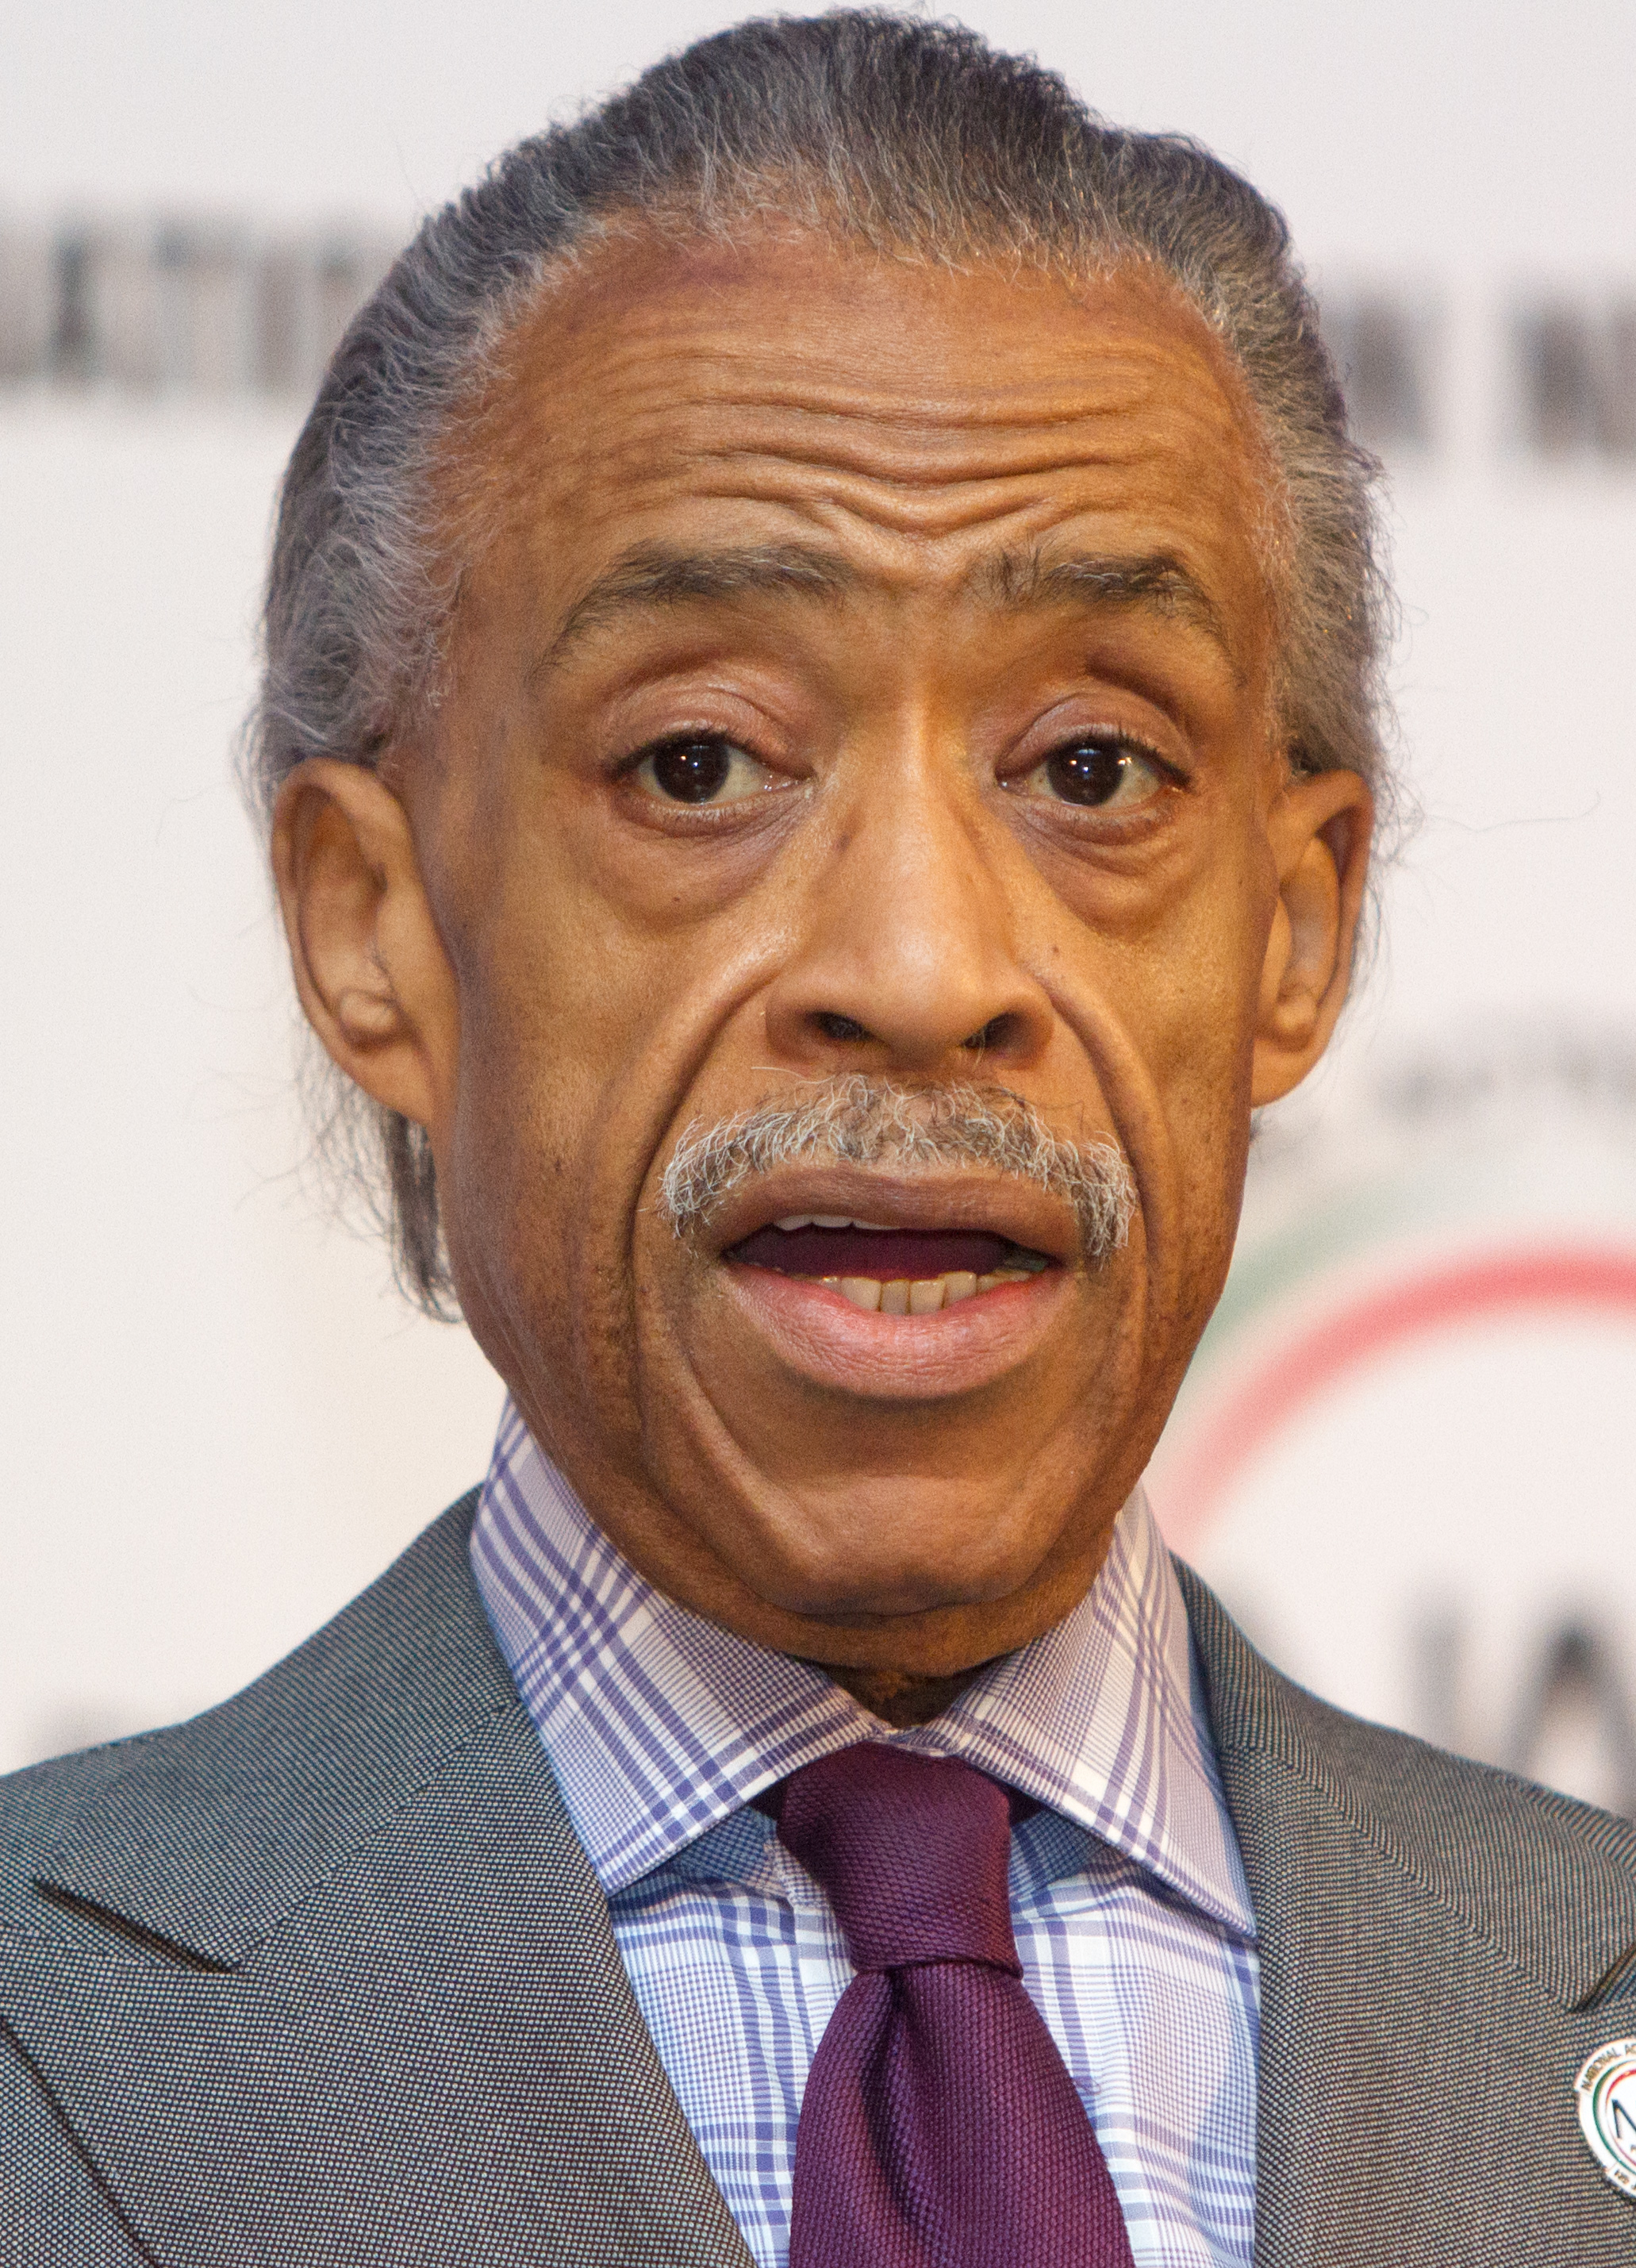 Sharpton TV commercial aims to increase voter turnout